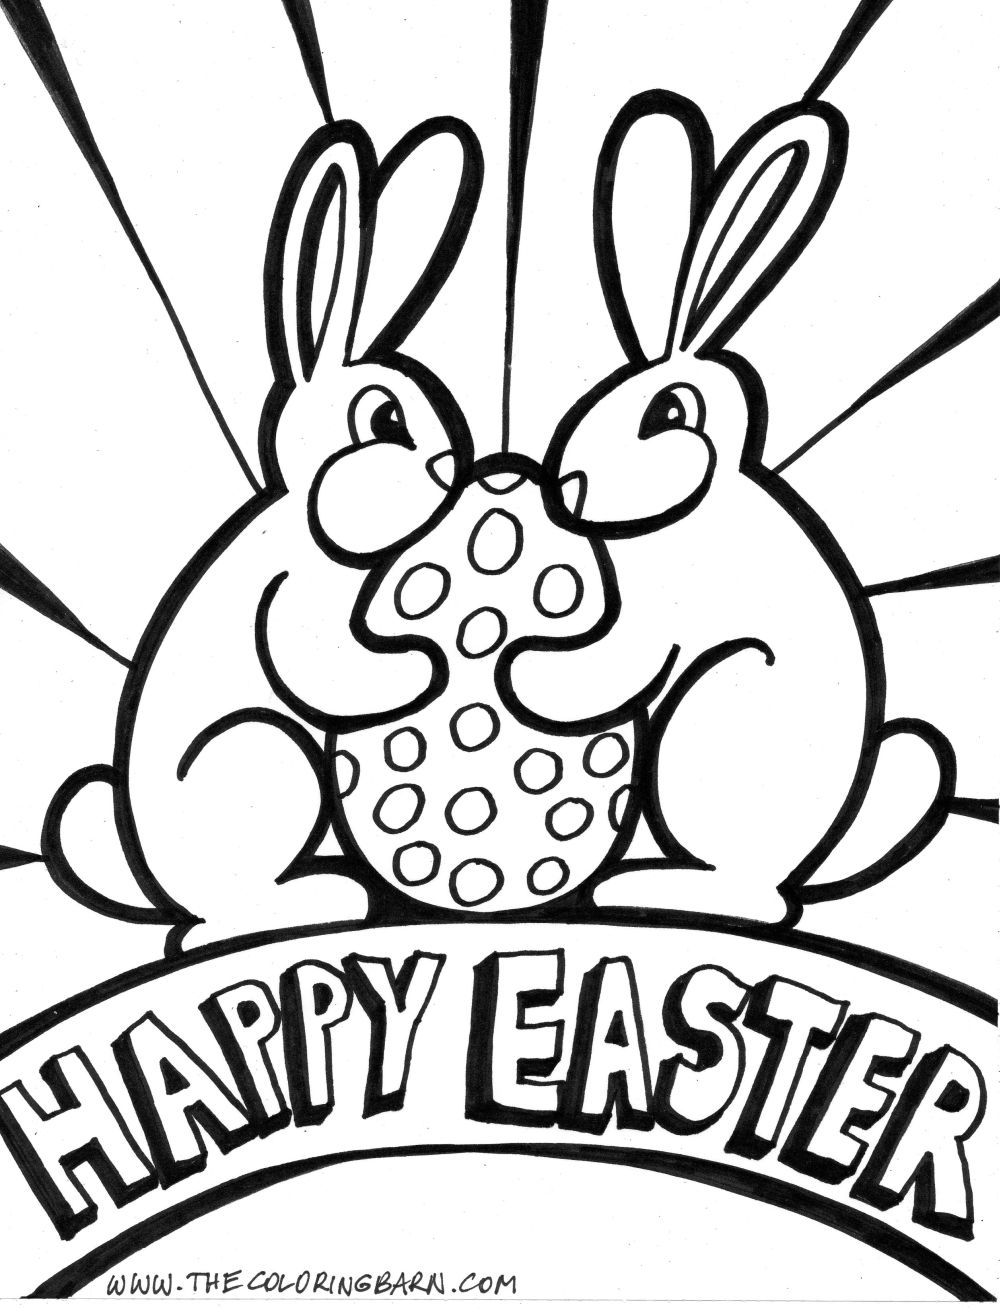 Childrens easter coloring pages - Easter Coloring Page 04 Jpg